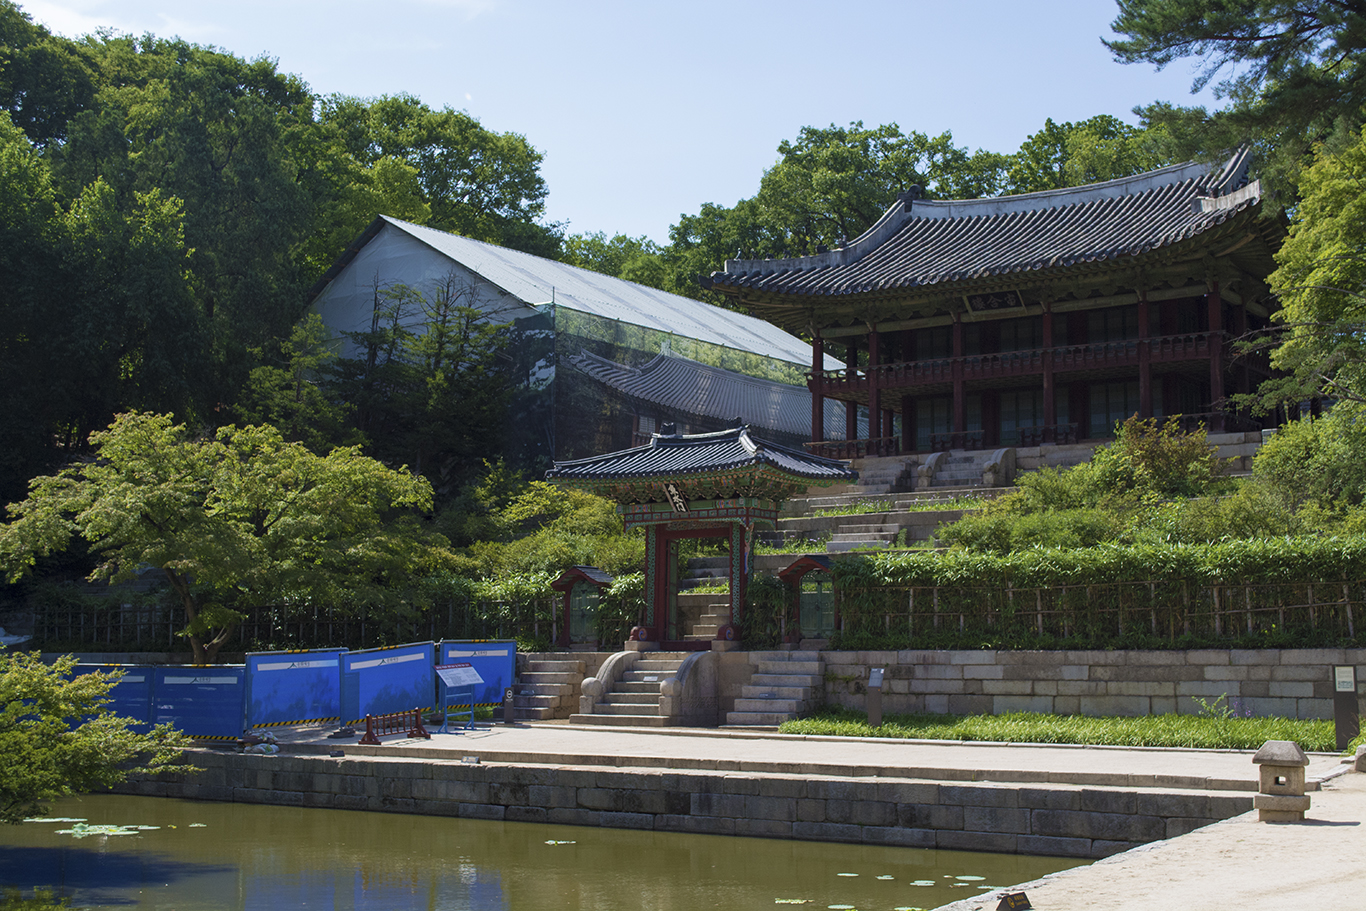 The Juhamnu Pavilion in front of the Buyongji Pond in the Changdeokgung palace in Seoul. (CHRISTOPHER CAMERON/THE STATESMAN)